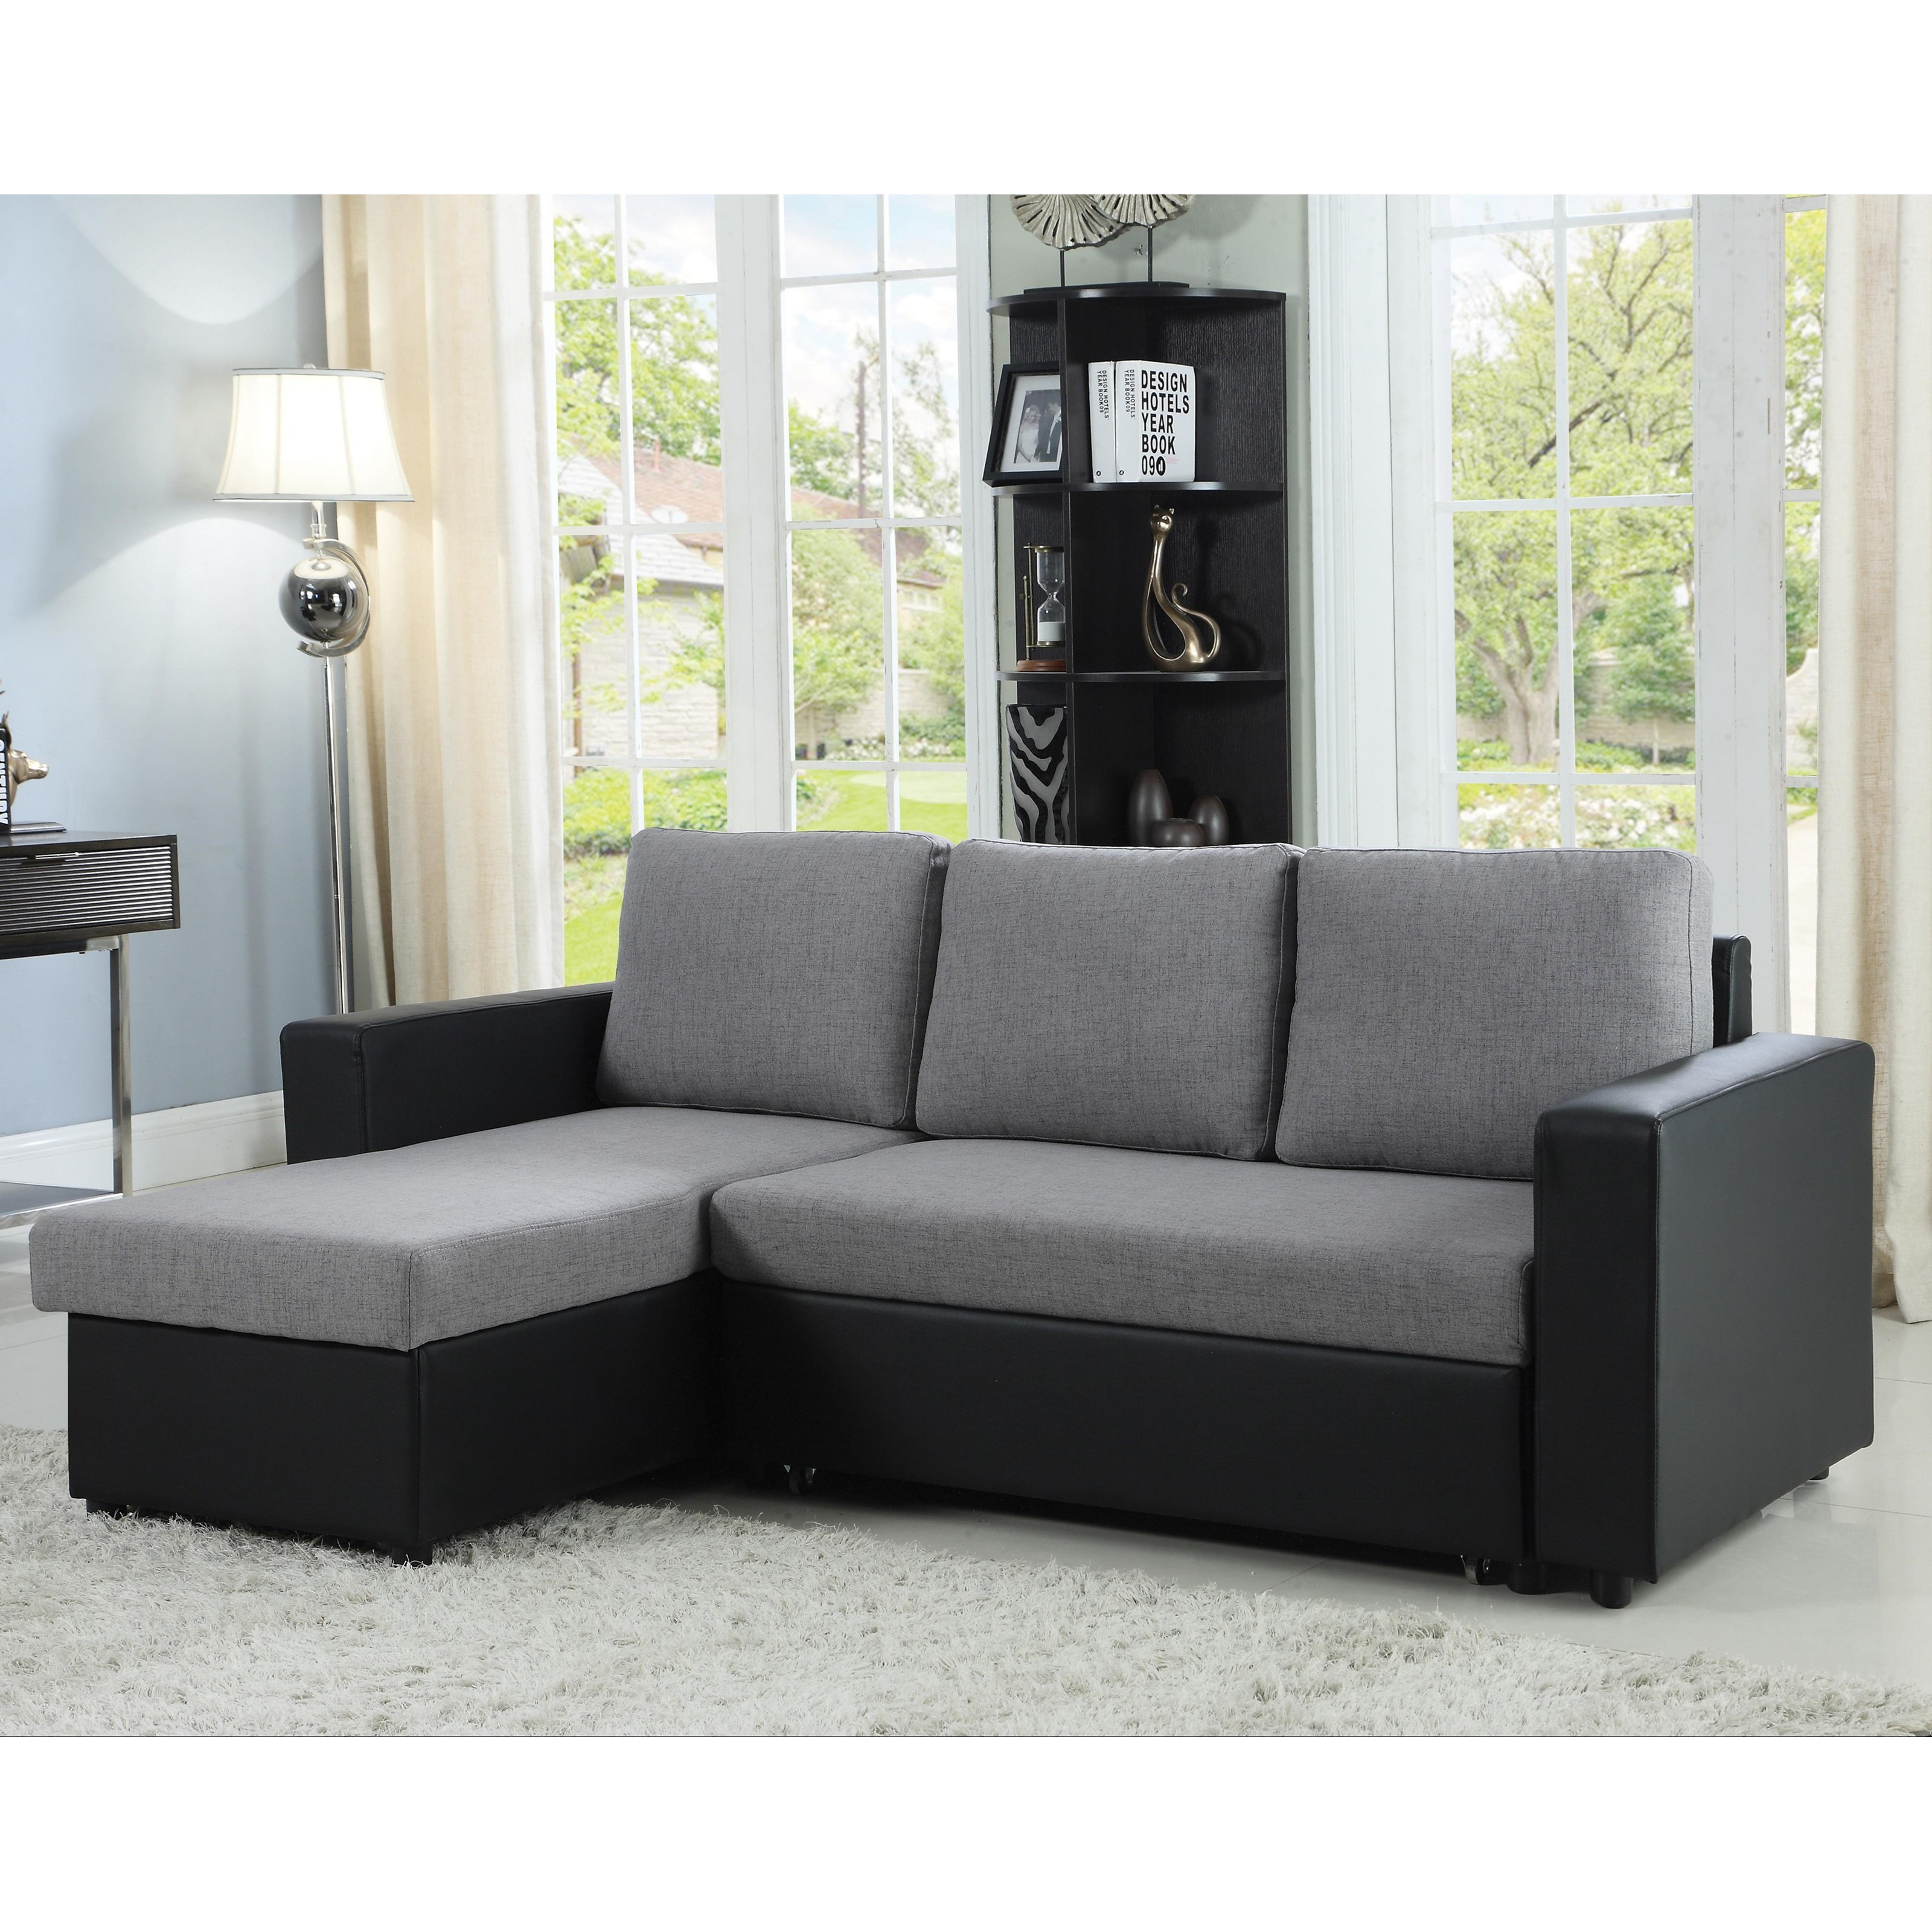 fufsack sofa sleeper lounge chair room board review coaster baylor 503929 sectional with chaise and